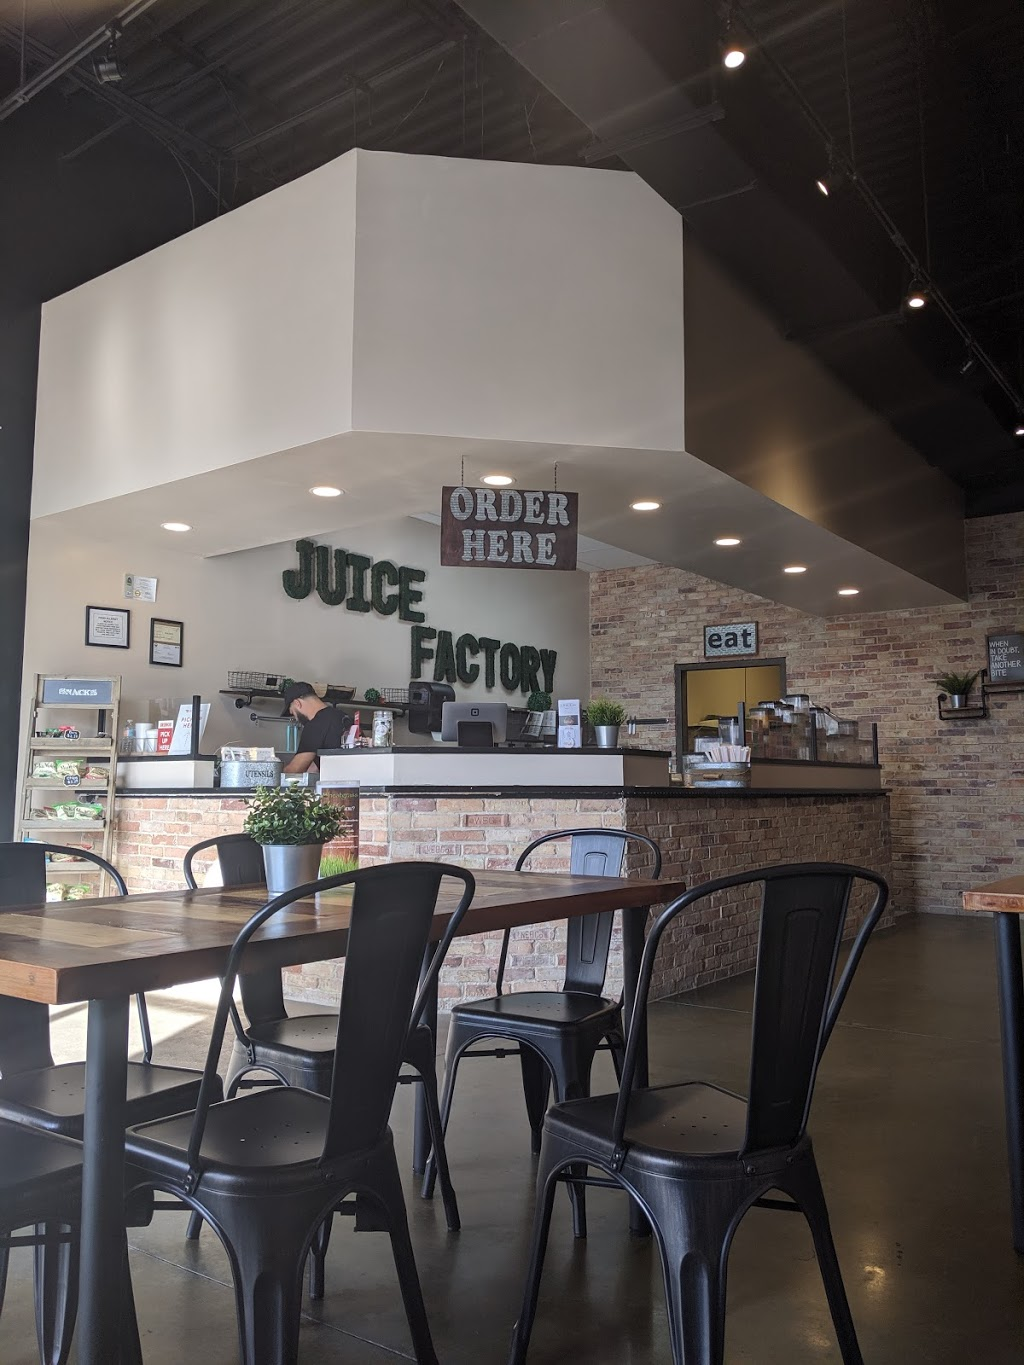 Juice Factory - restaurant  | Photo 6 of 10 | Address: 6431 E County Line Rd #110, Tampa, FL 33647, USA | Phone: (813) 345-8884